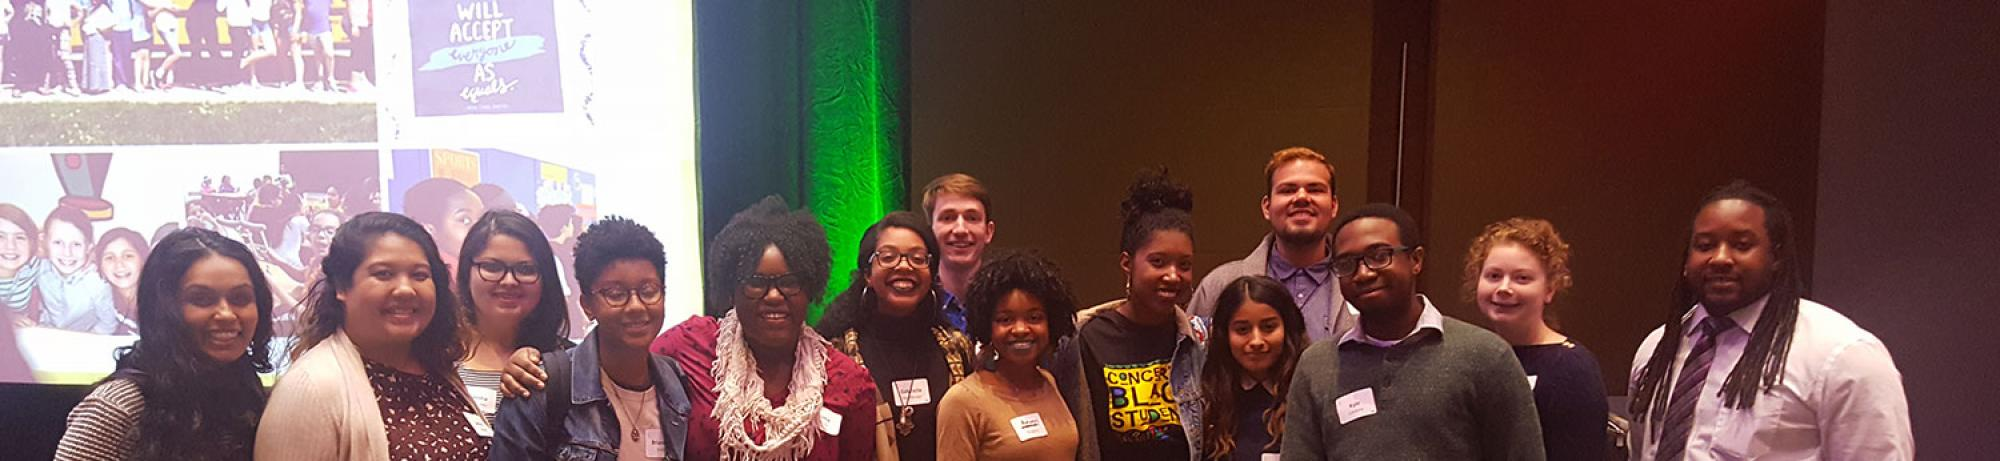 A group of students pose for a photo with a presentation screen behind them for Angela Davis